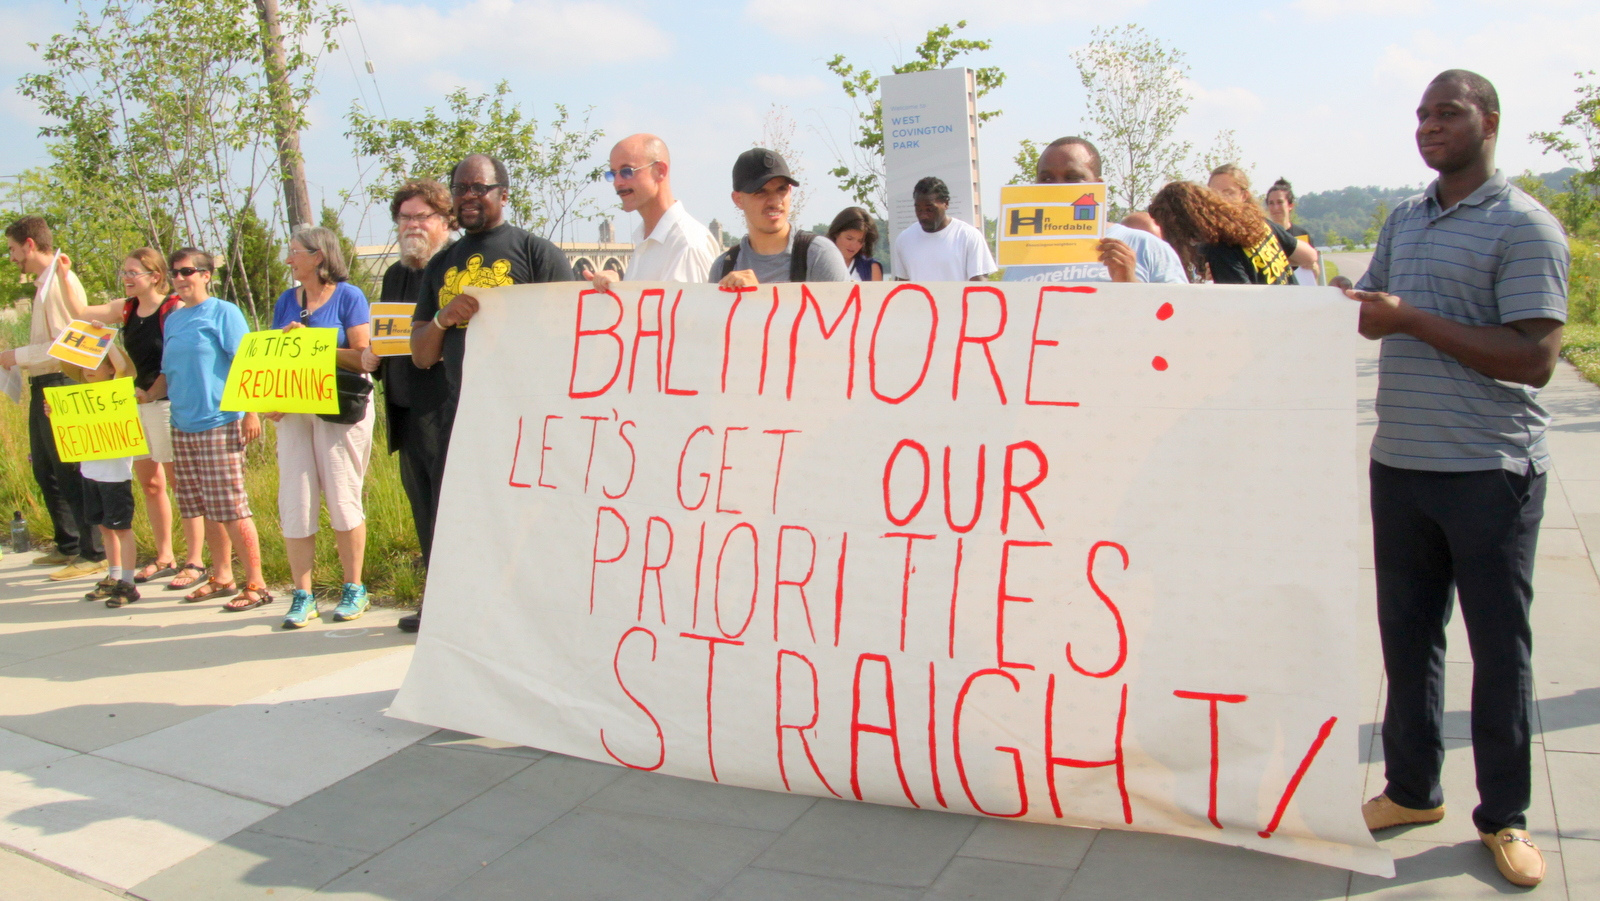 Protesters lined up outside the Sagamore-sponsored 1000 Friends event. (Fern Shen)